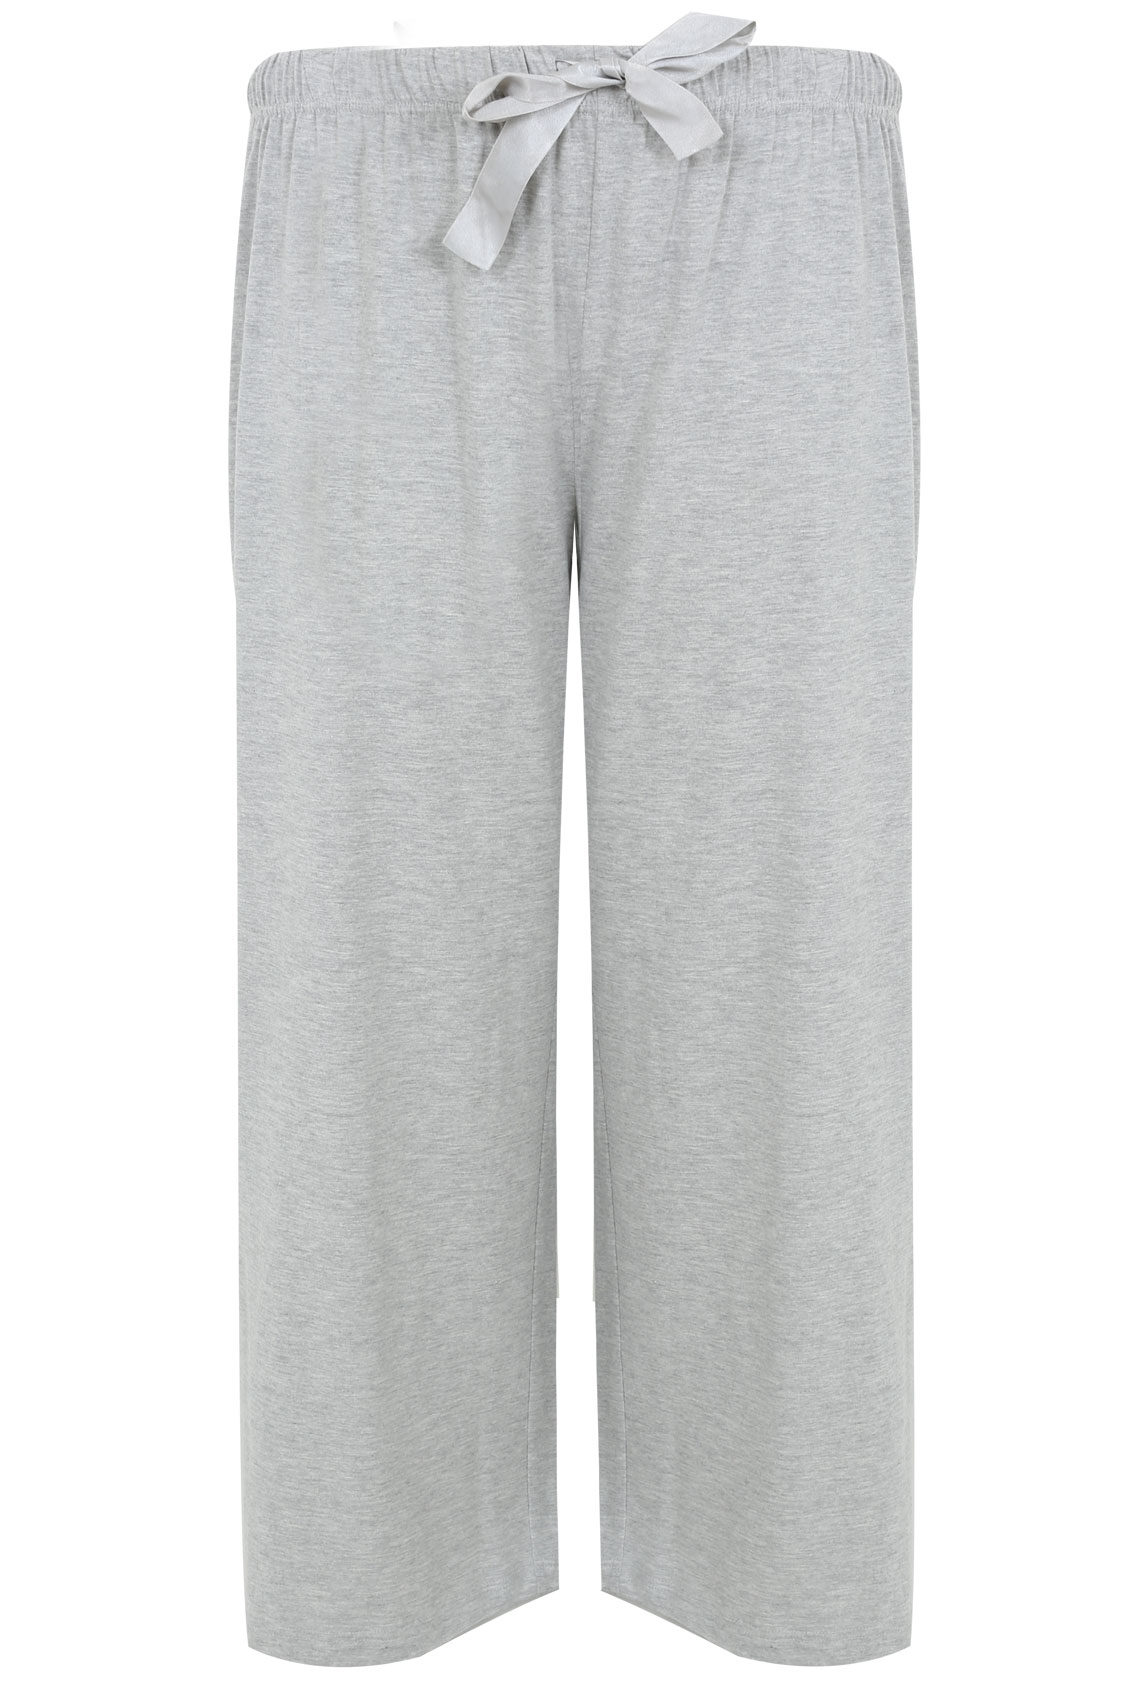 Grey Basic Cotton Pyjama Bottoms plus Size 16 to 32